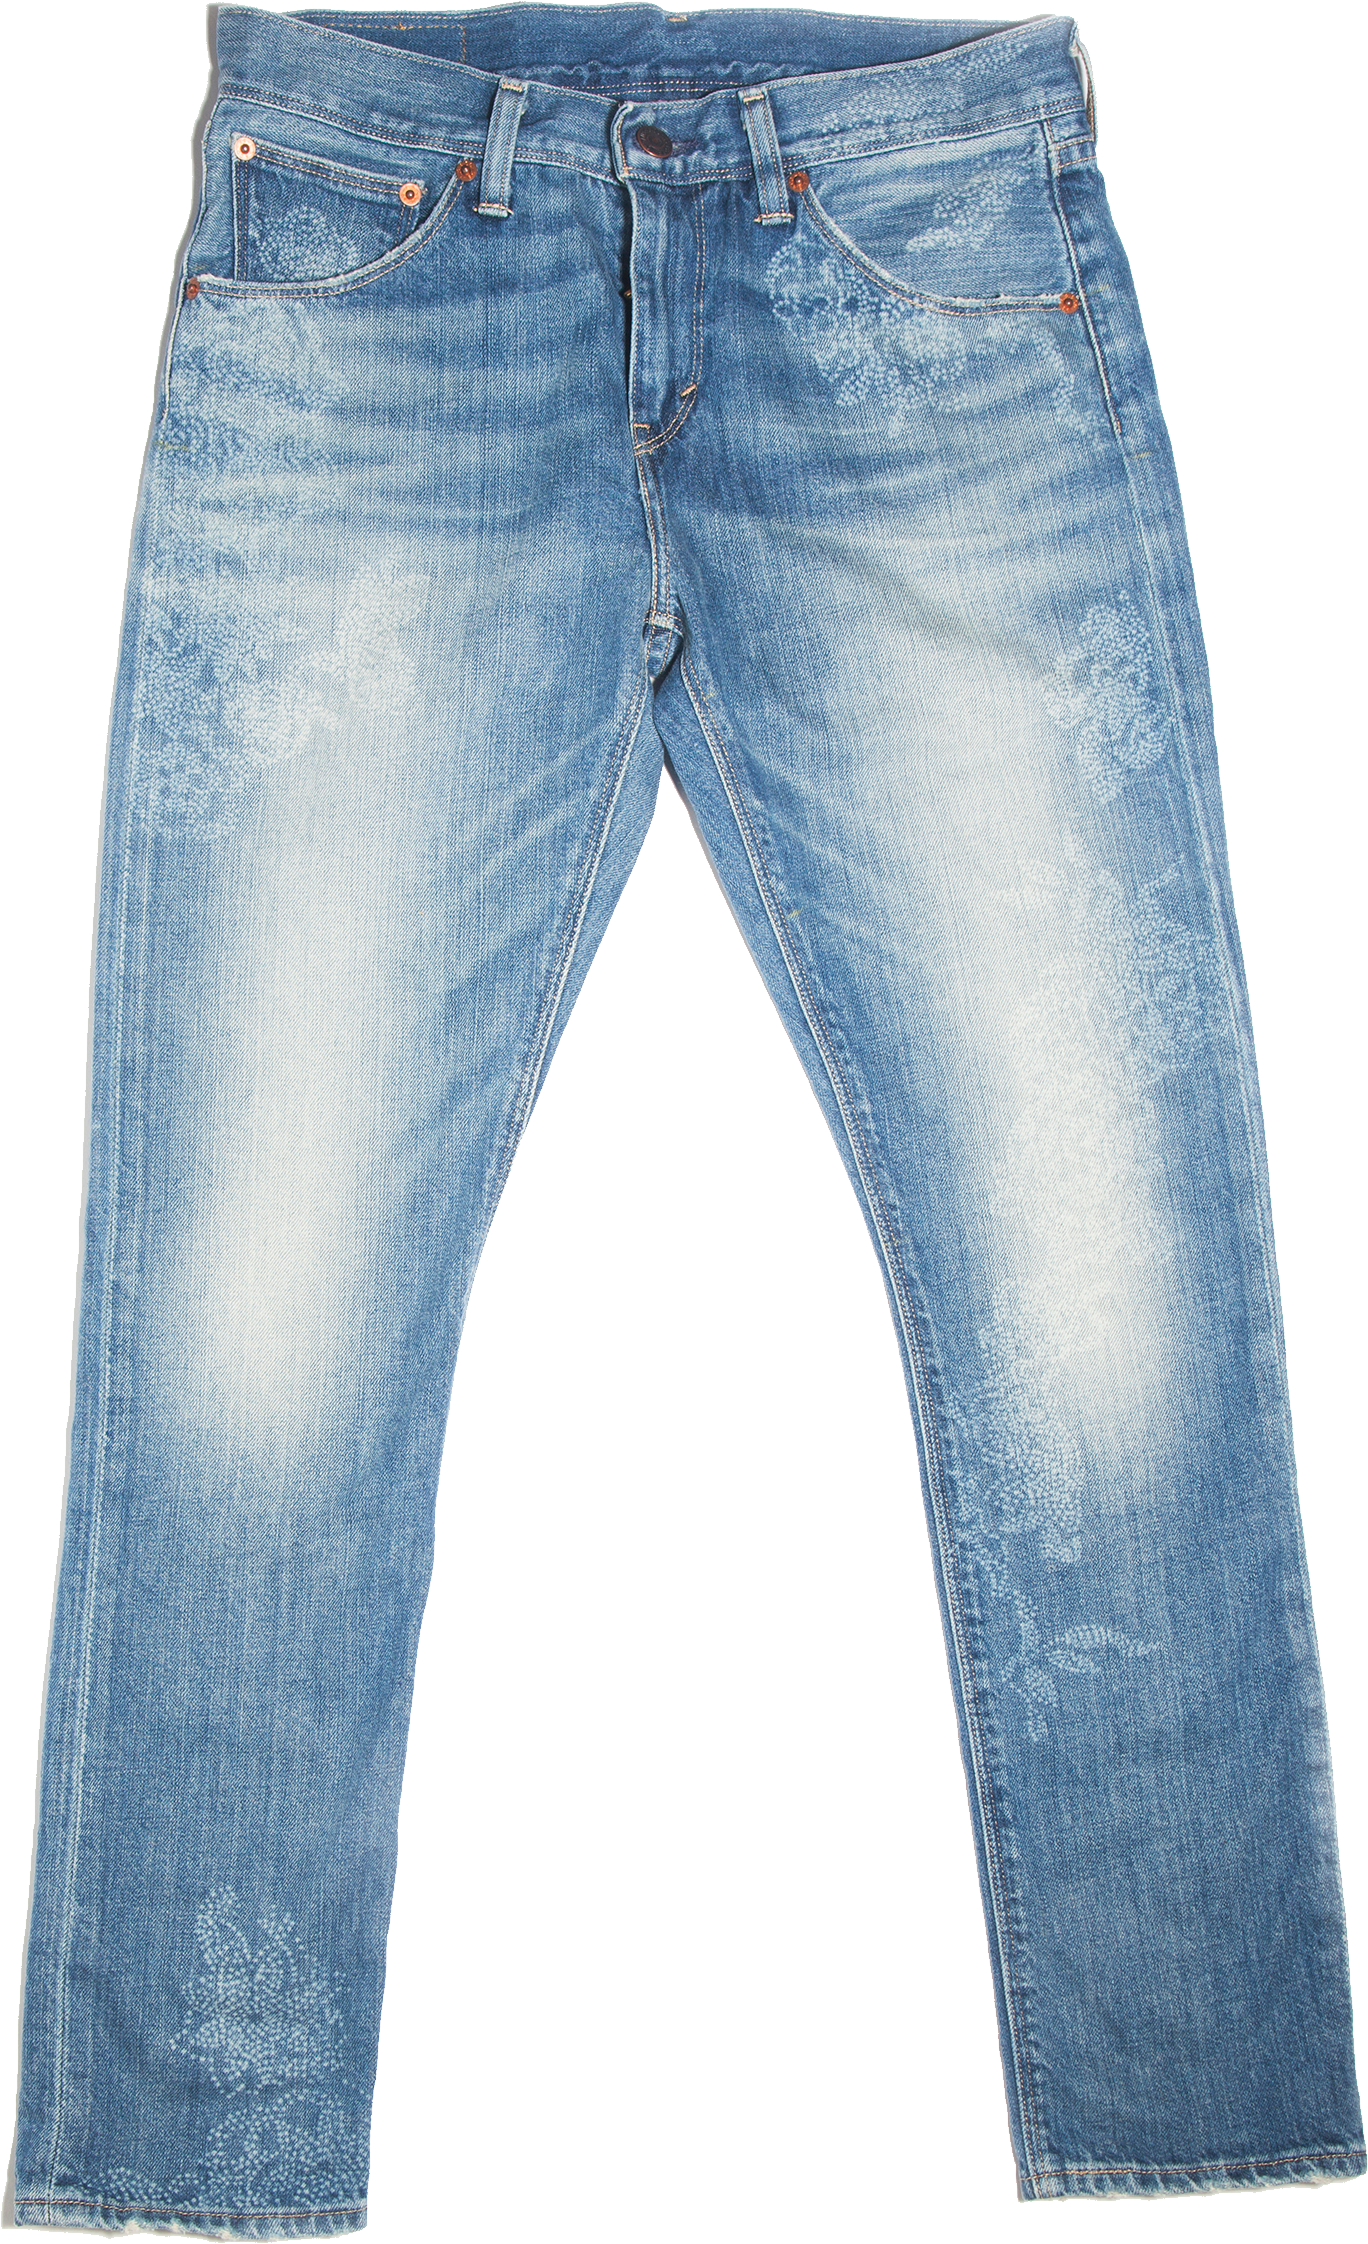 Pile of dirty clothes png. Clipart denim jeans collection